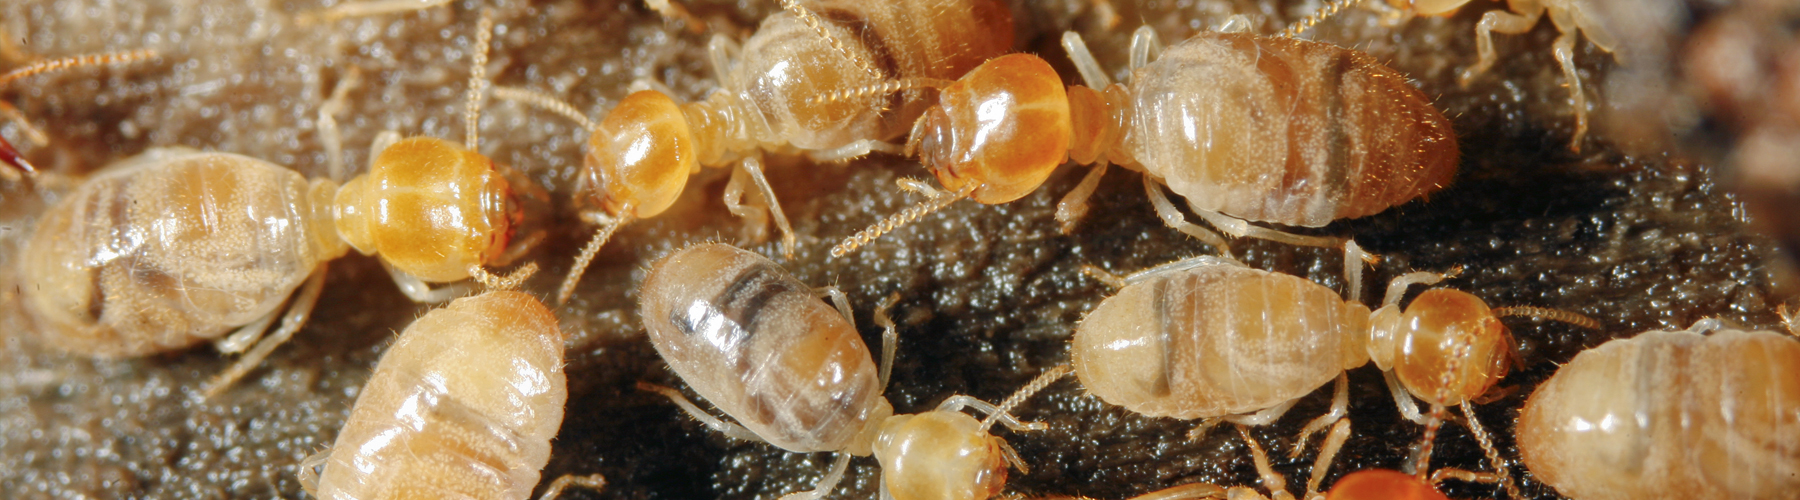 https://backbaypest.com/wp-content/uploads/2015/12/termite-1.jpg